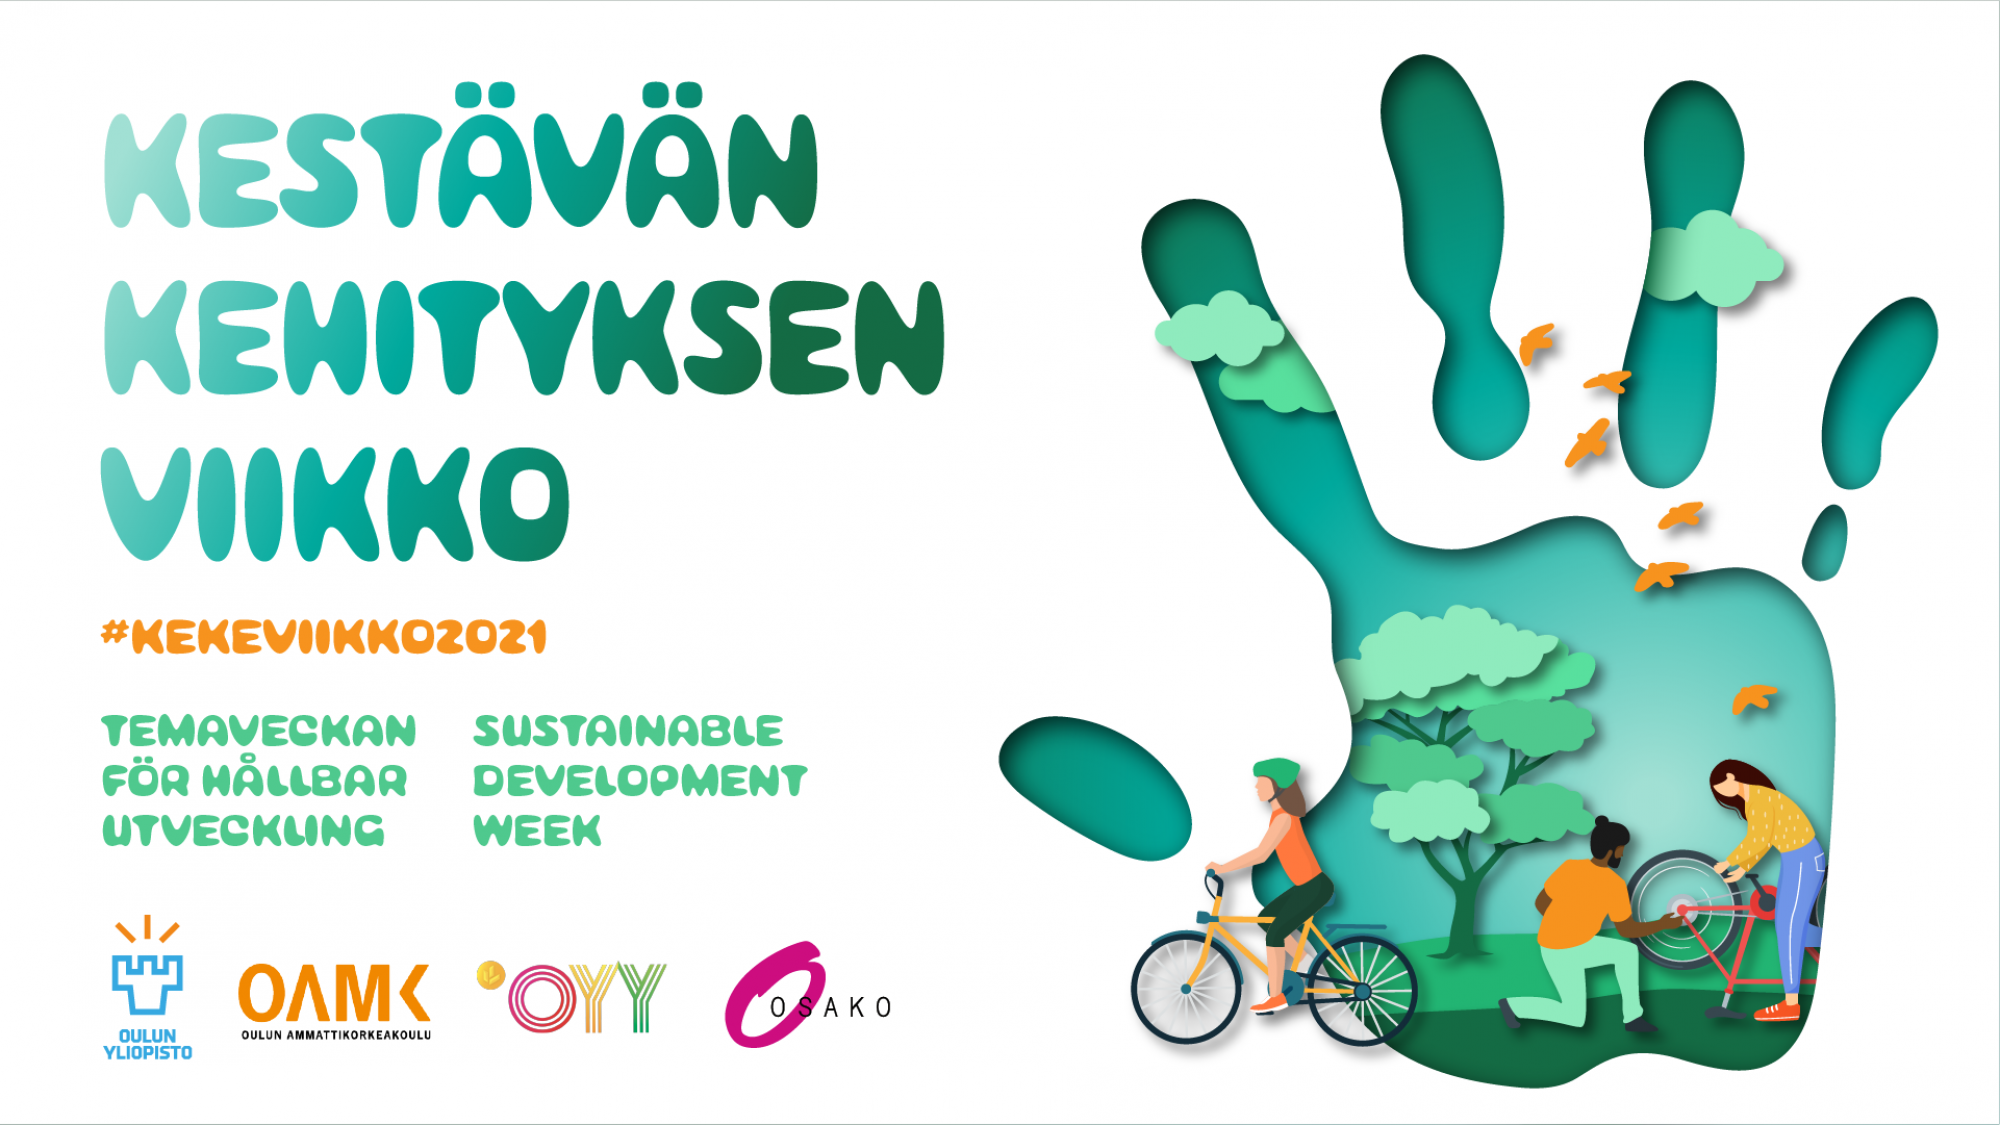 The University of Oulu, Oulu University of Applied Sciences, the Student Union of the University of Oulu and the student body OSAKO organize the Sustainable Development Week in cooperation. The theme of the week, sustainable actions, is described by a drawing of a green palm, inside of which there are people who are repairing bikes and cycling.